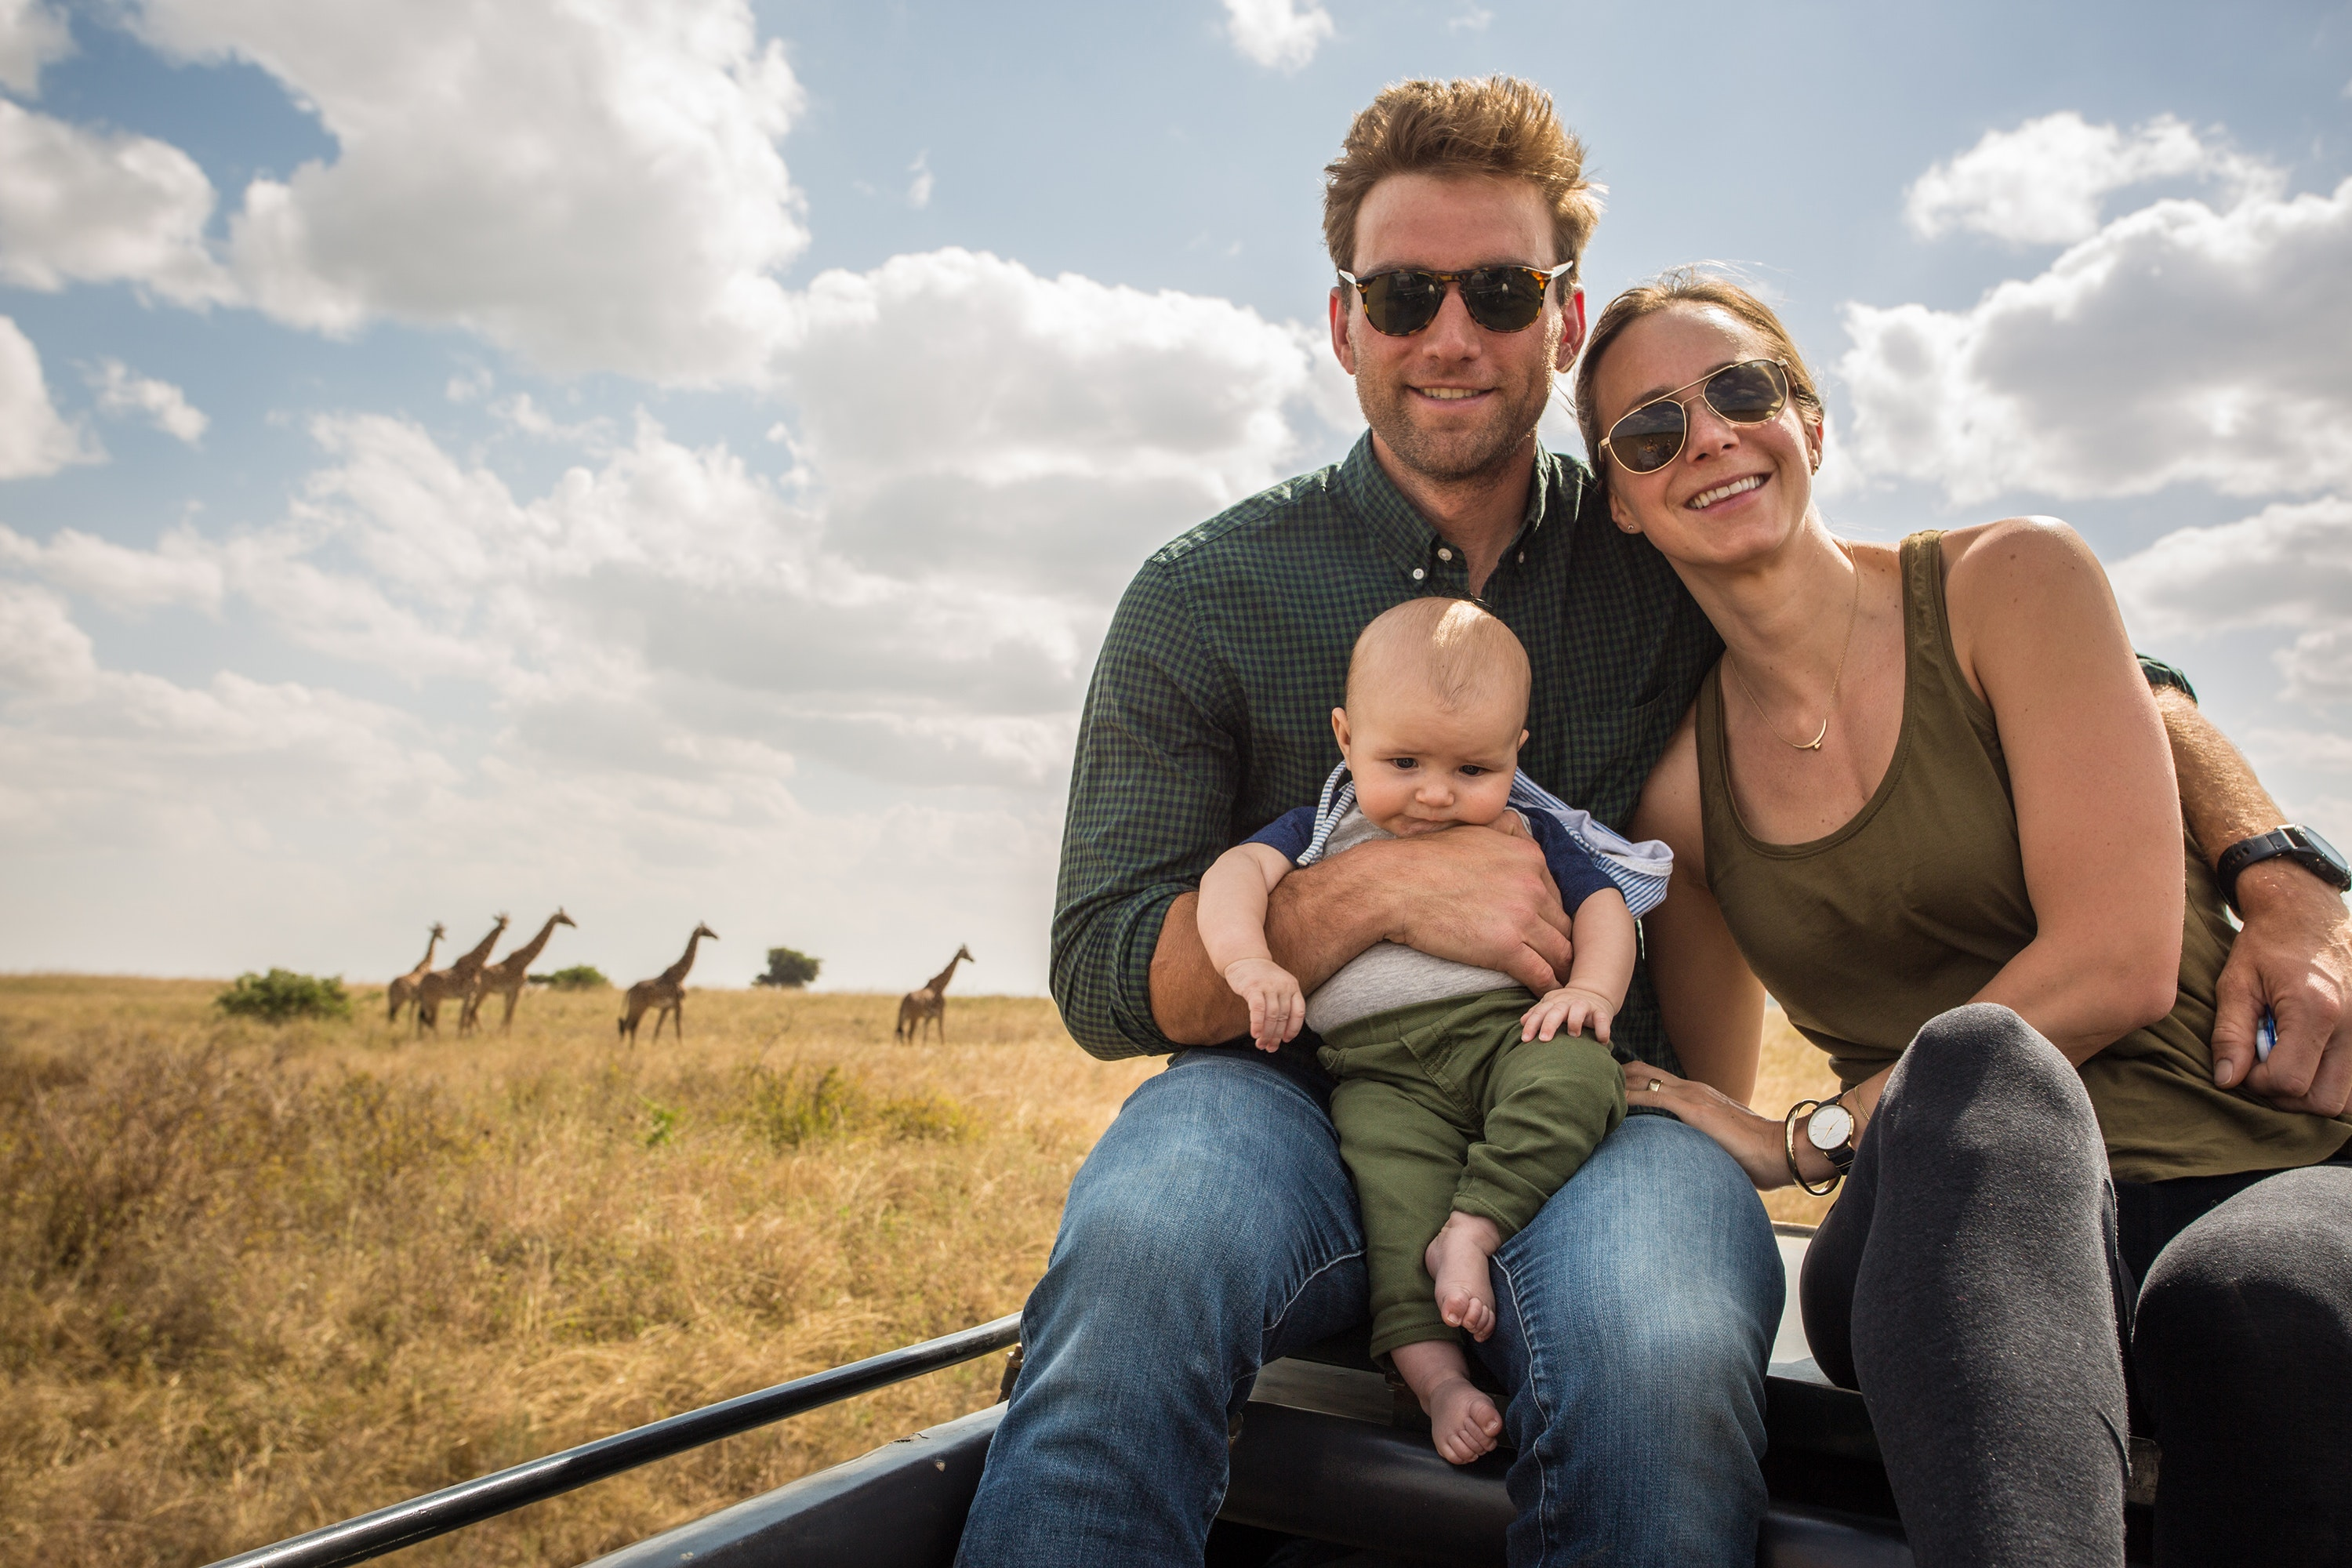 The Chambers's young son, Max, is already an old hand at navigating Africa. Here, the trio poses while on a brief wildlife safari in Nairobi National Park.